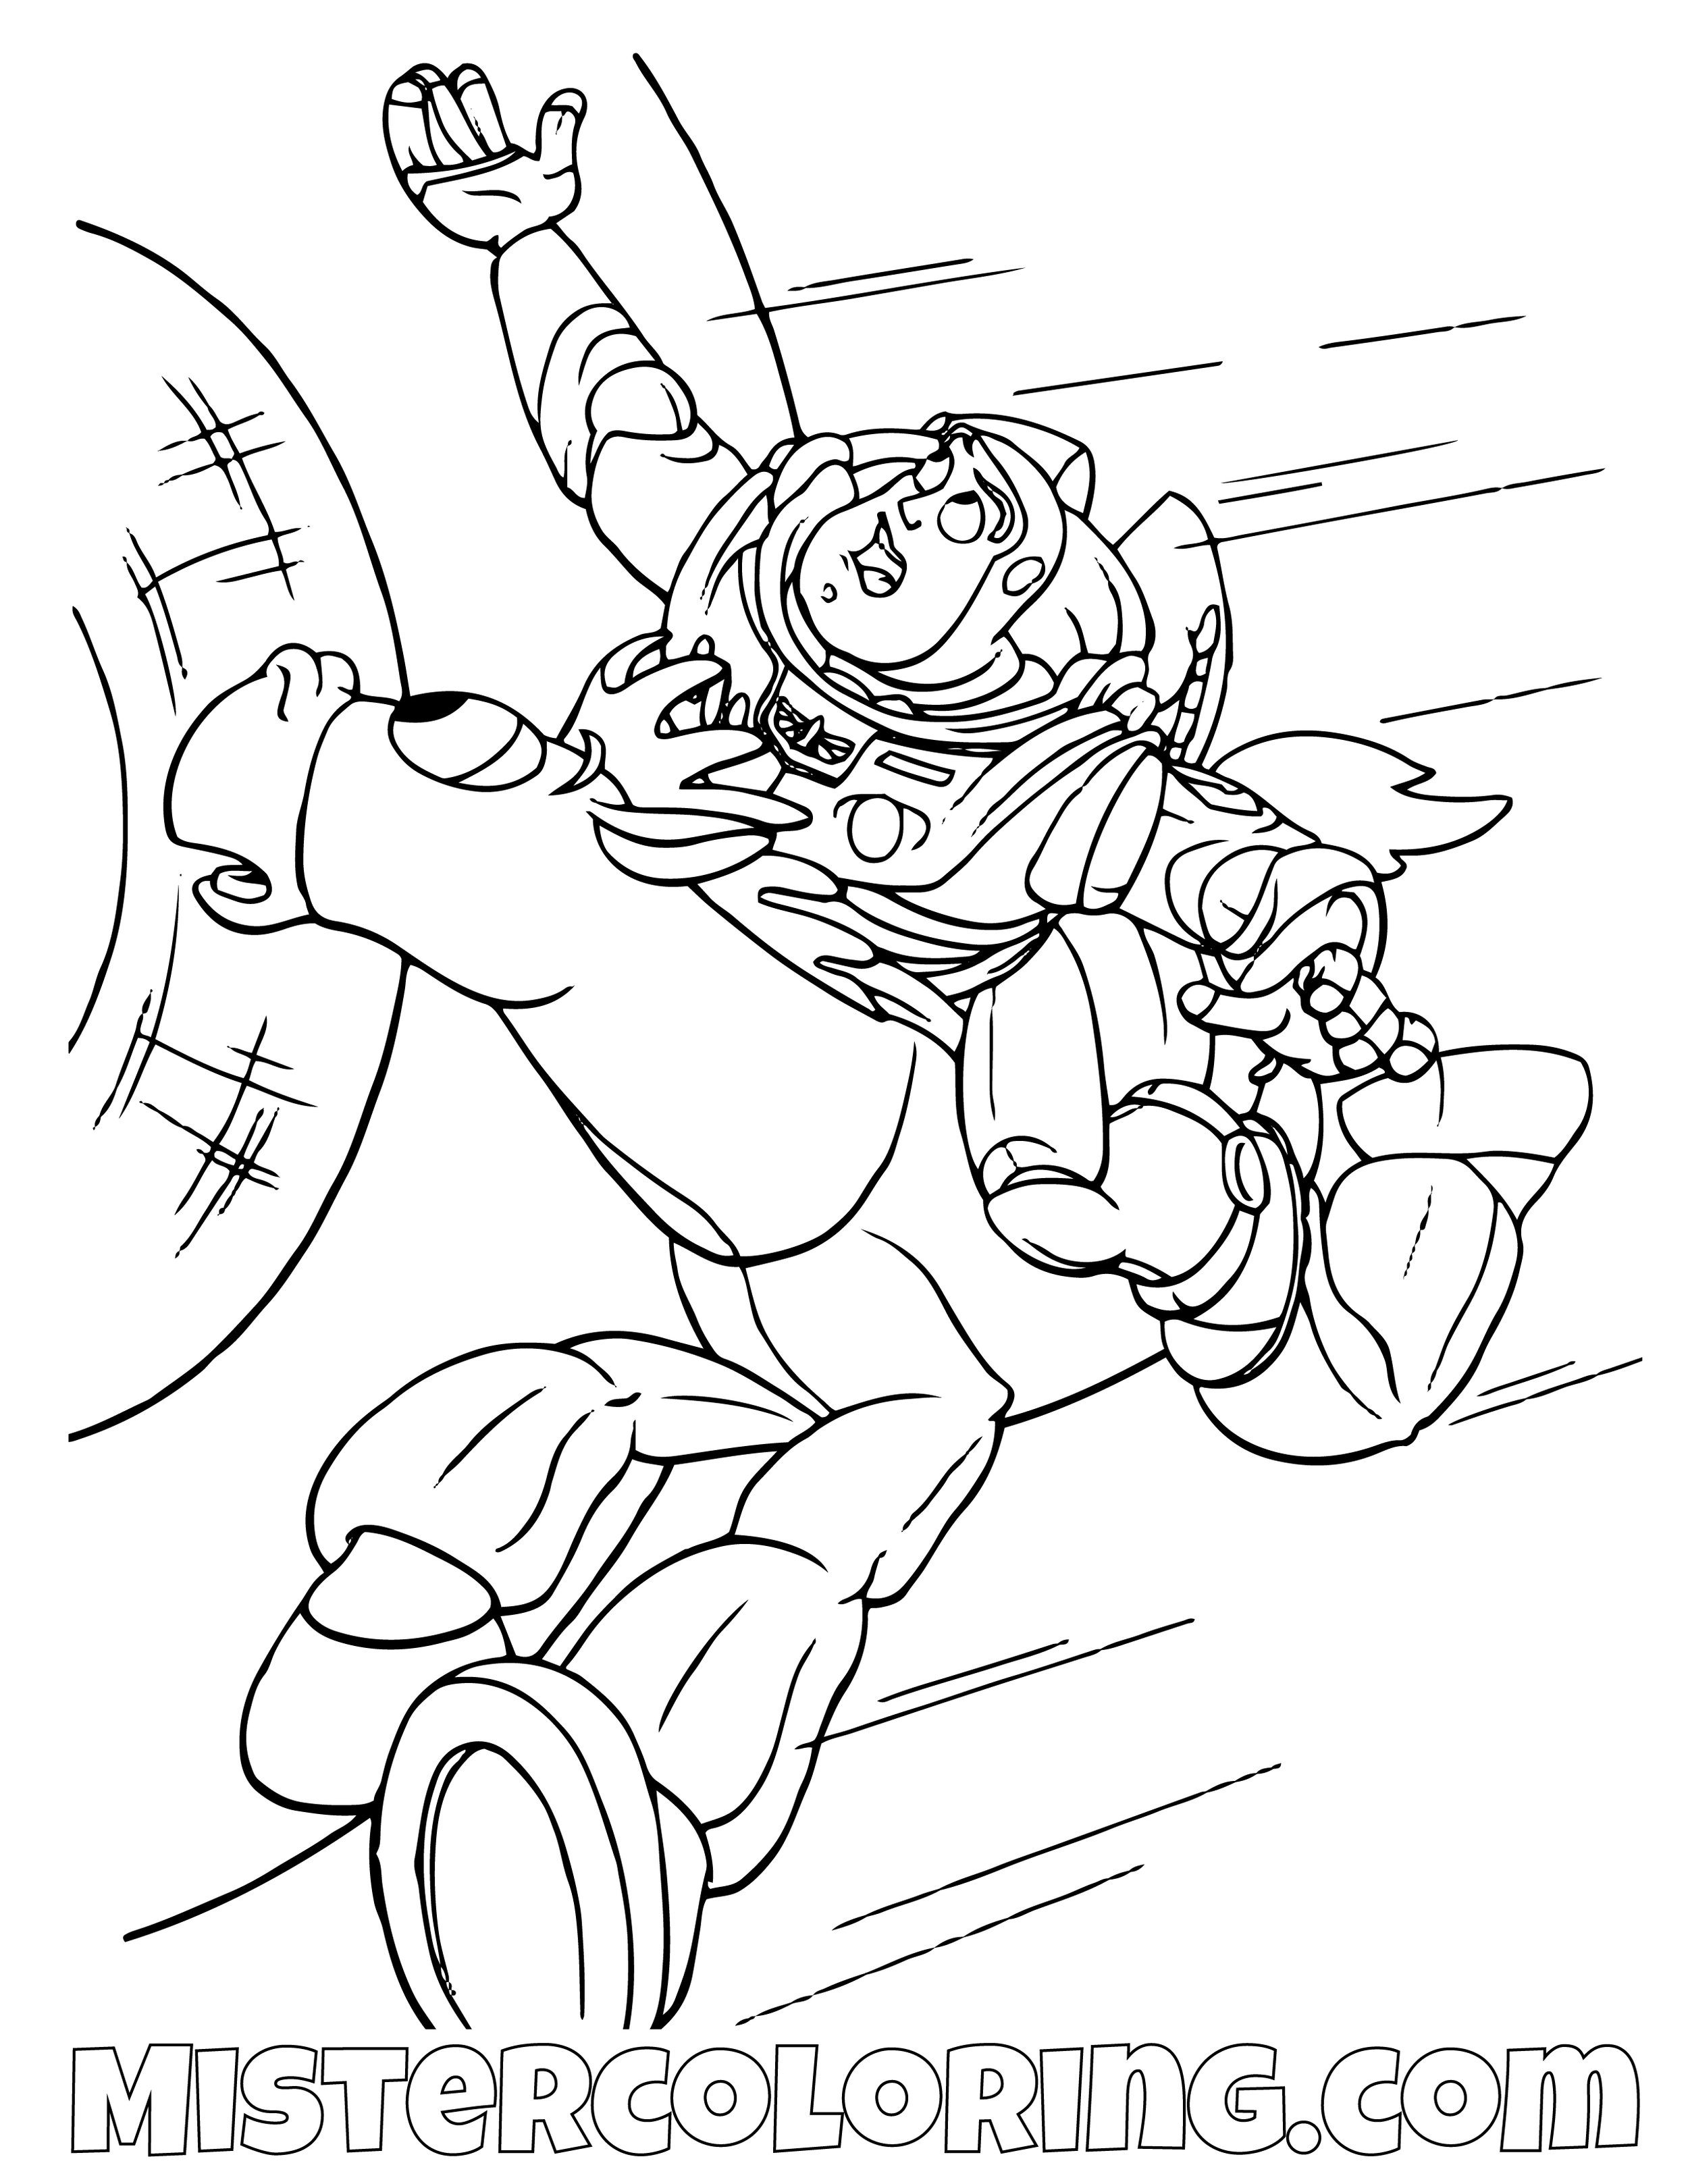 Buzz Lightyear Riding Bullseye To Save Woody Toy Story Coloring Page